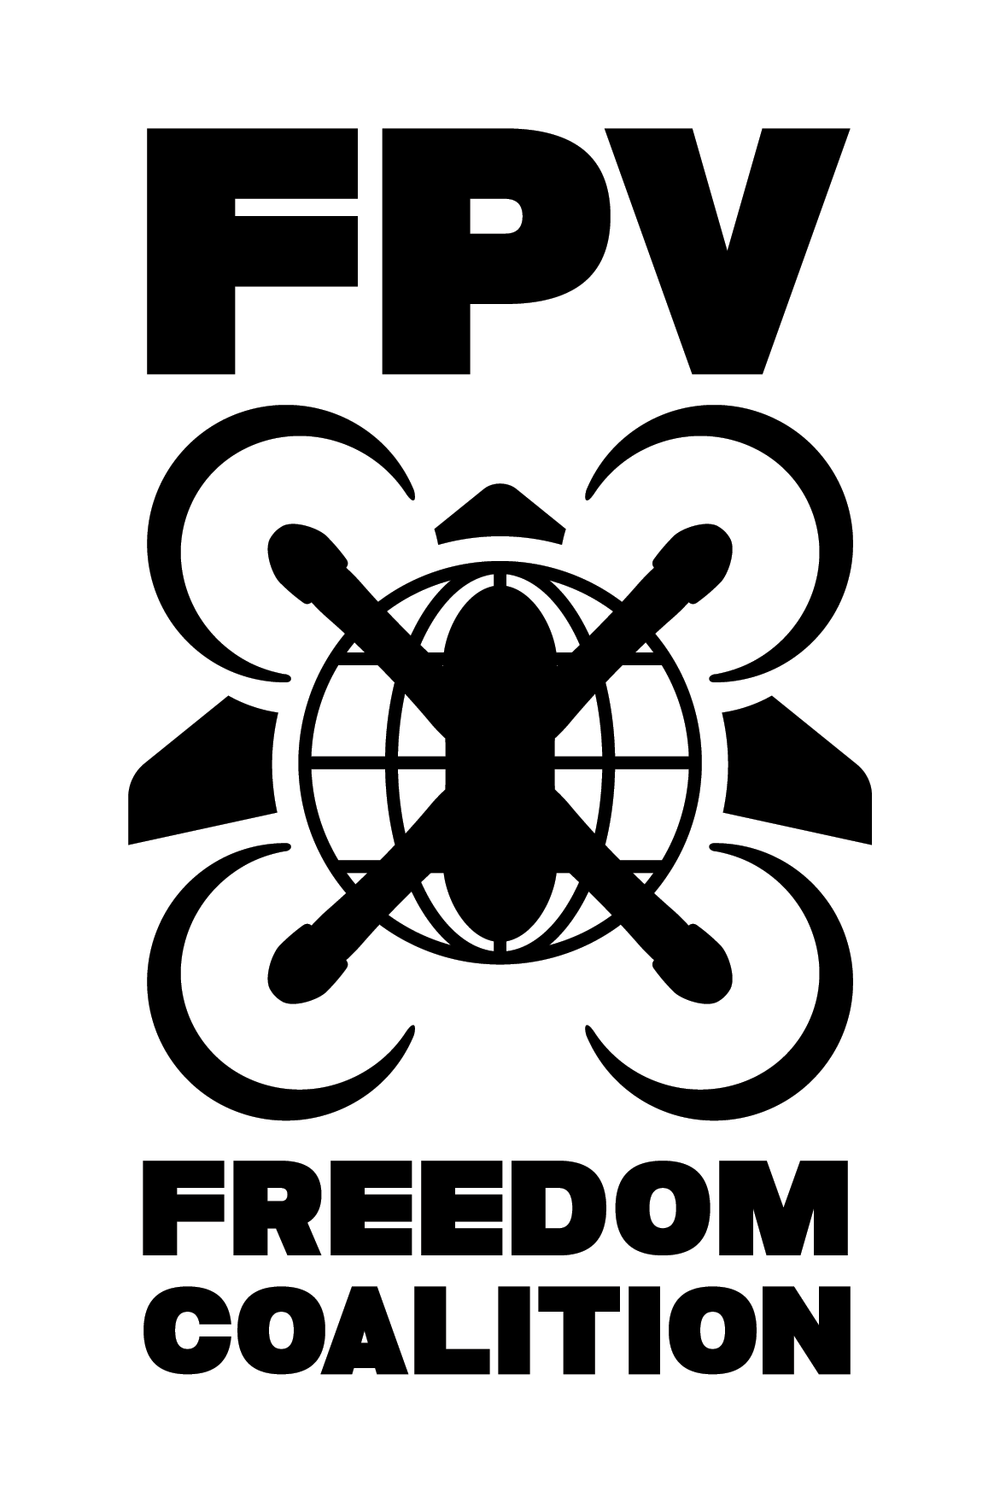 FPVFC---Vertical-Logo-Black-on-White.png